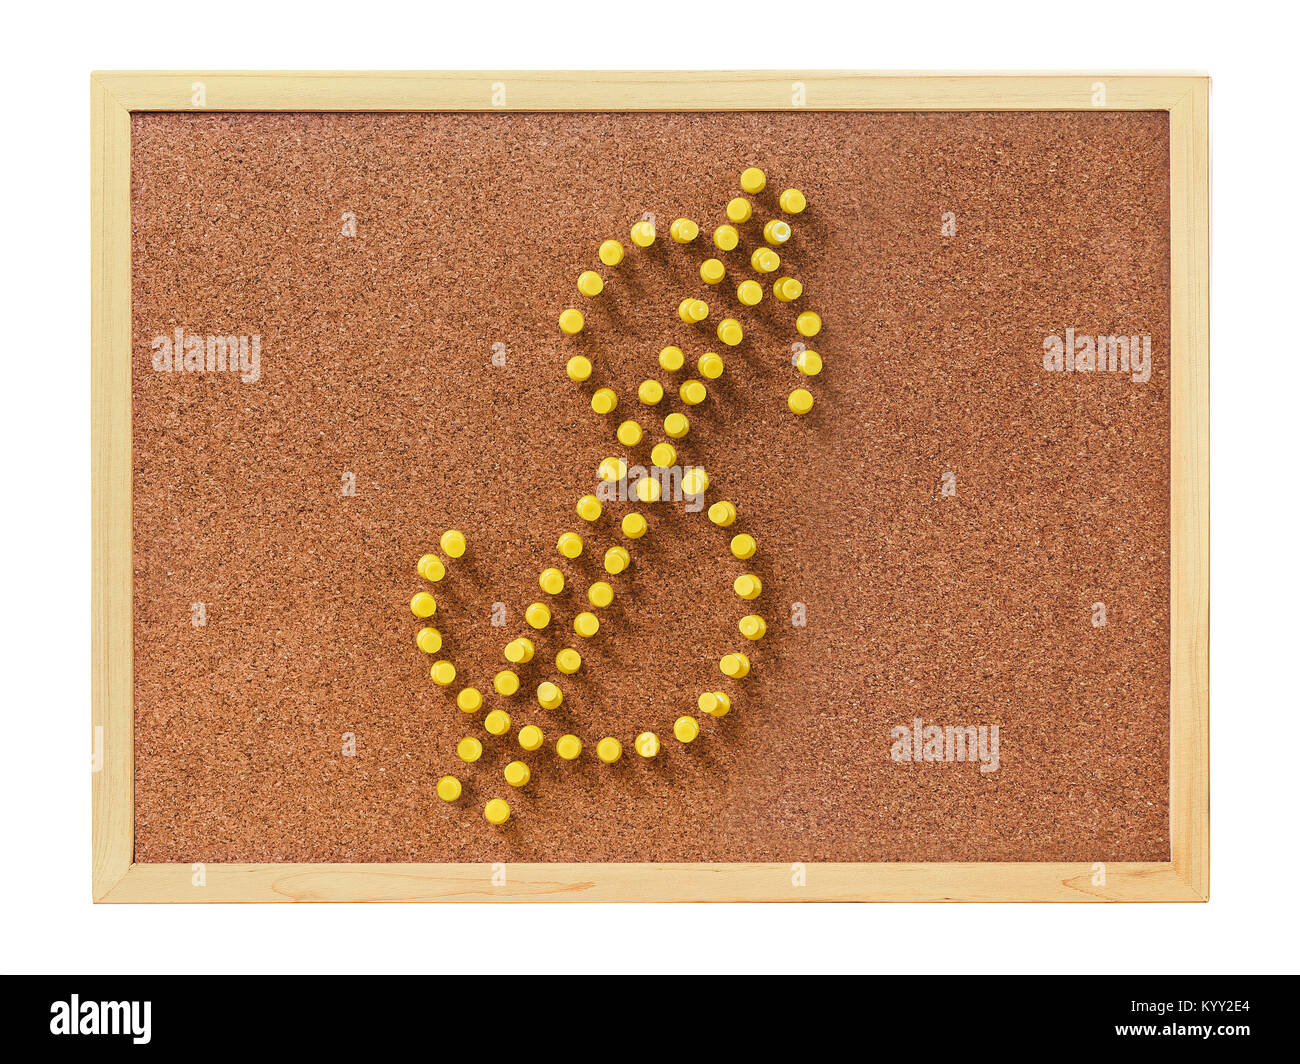 Plastic pins in U.S. dollar shape - Stock Image